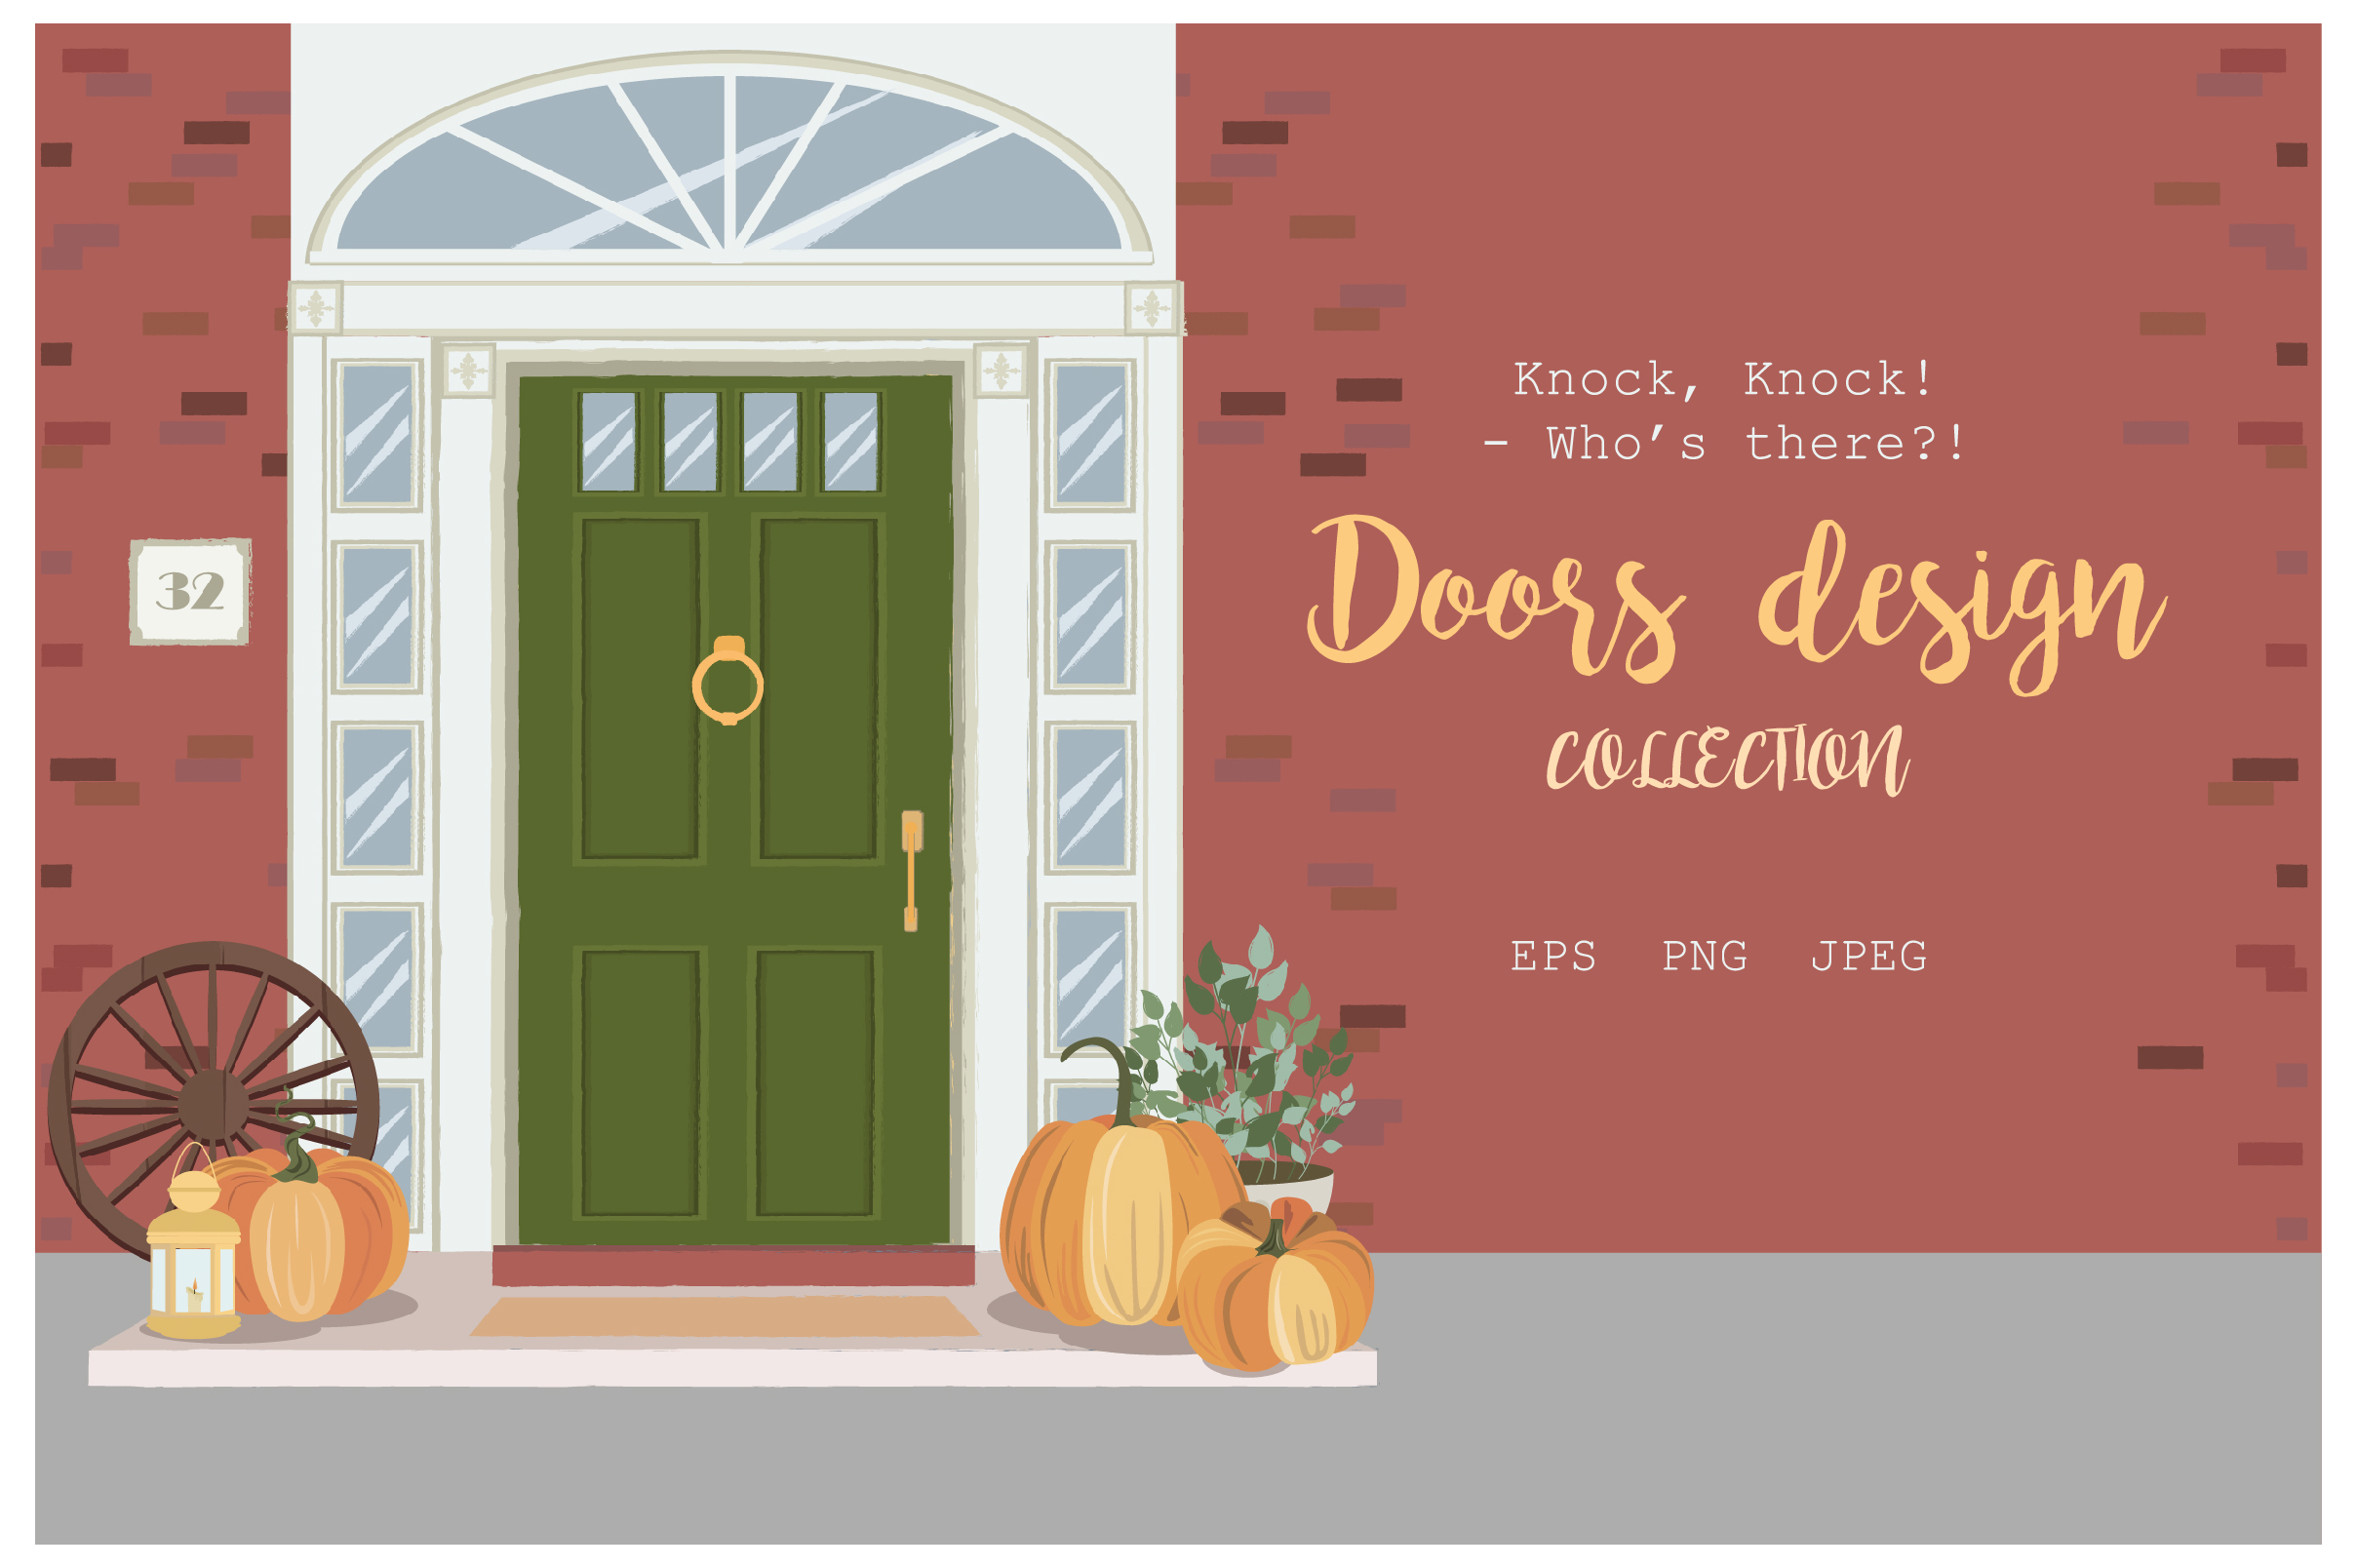 Doors design collection example image 1